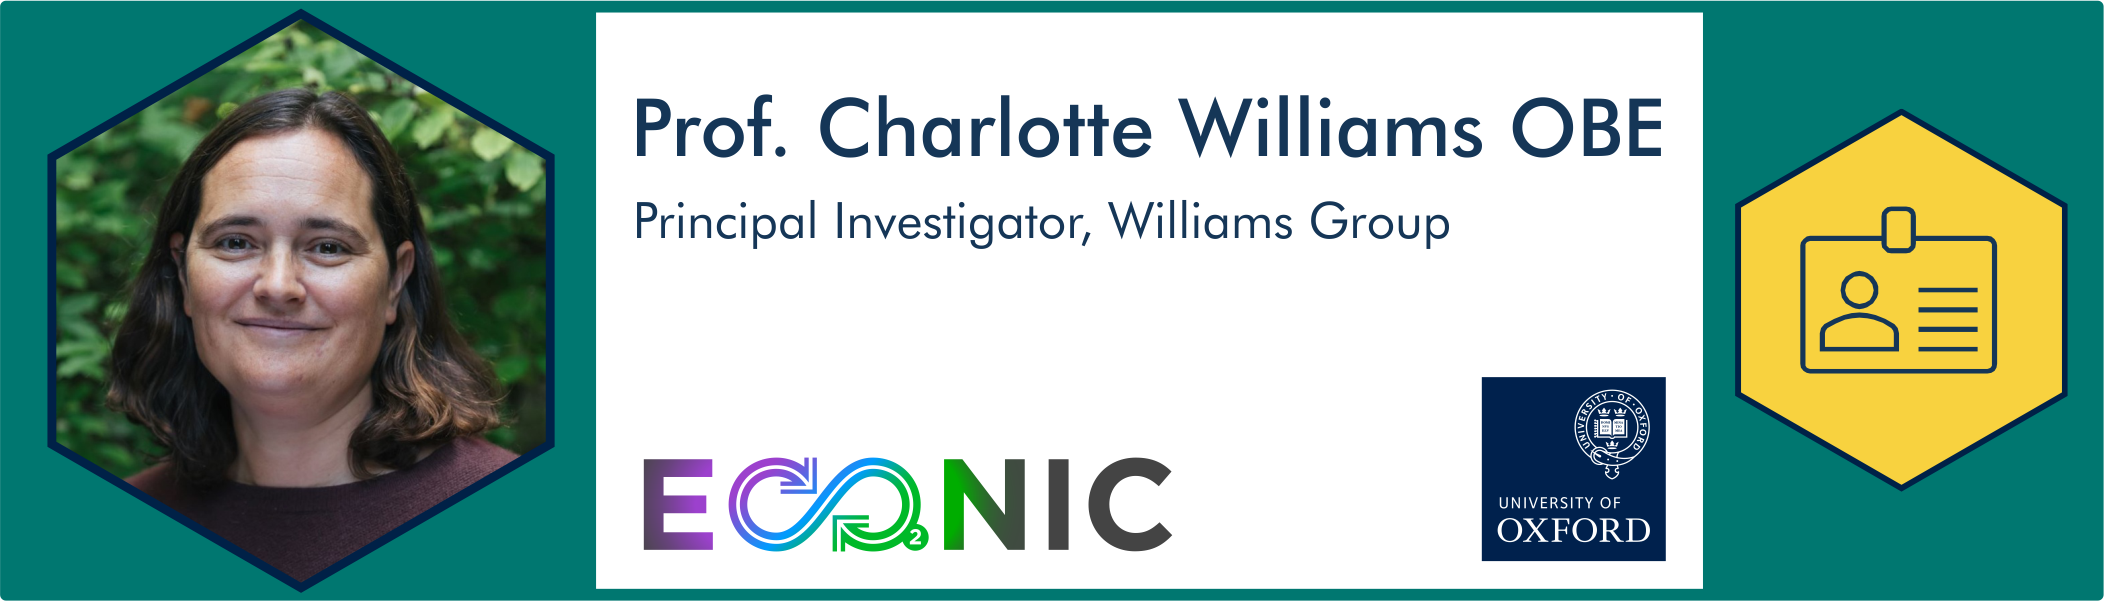 Prof. Charlotte Williams further information